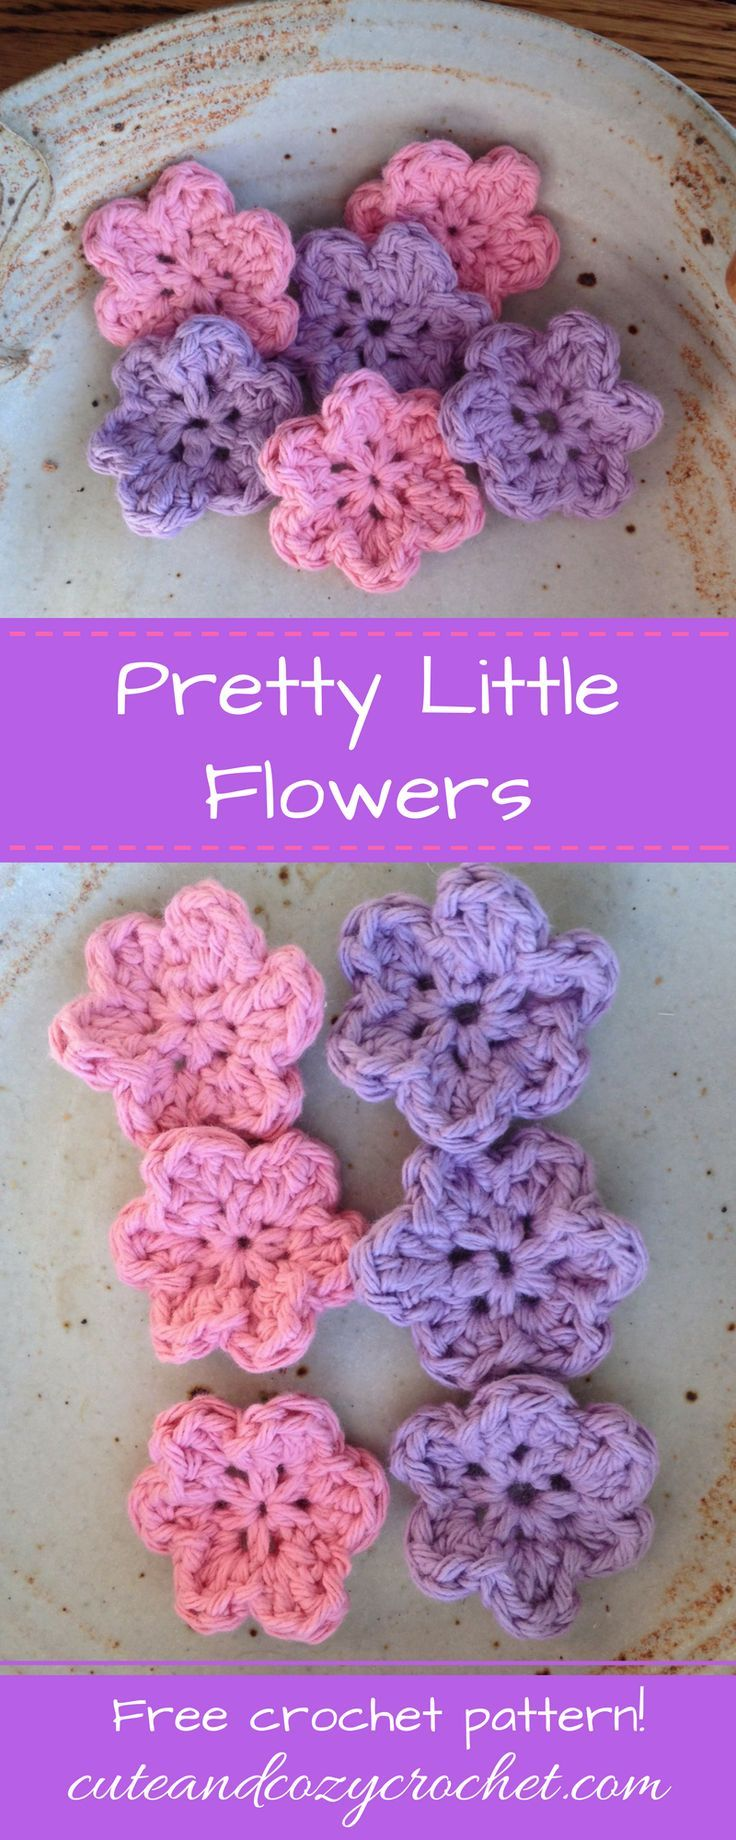 Pretty Little Flower | Small flowers, Free crochet and Crochet